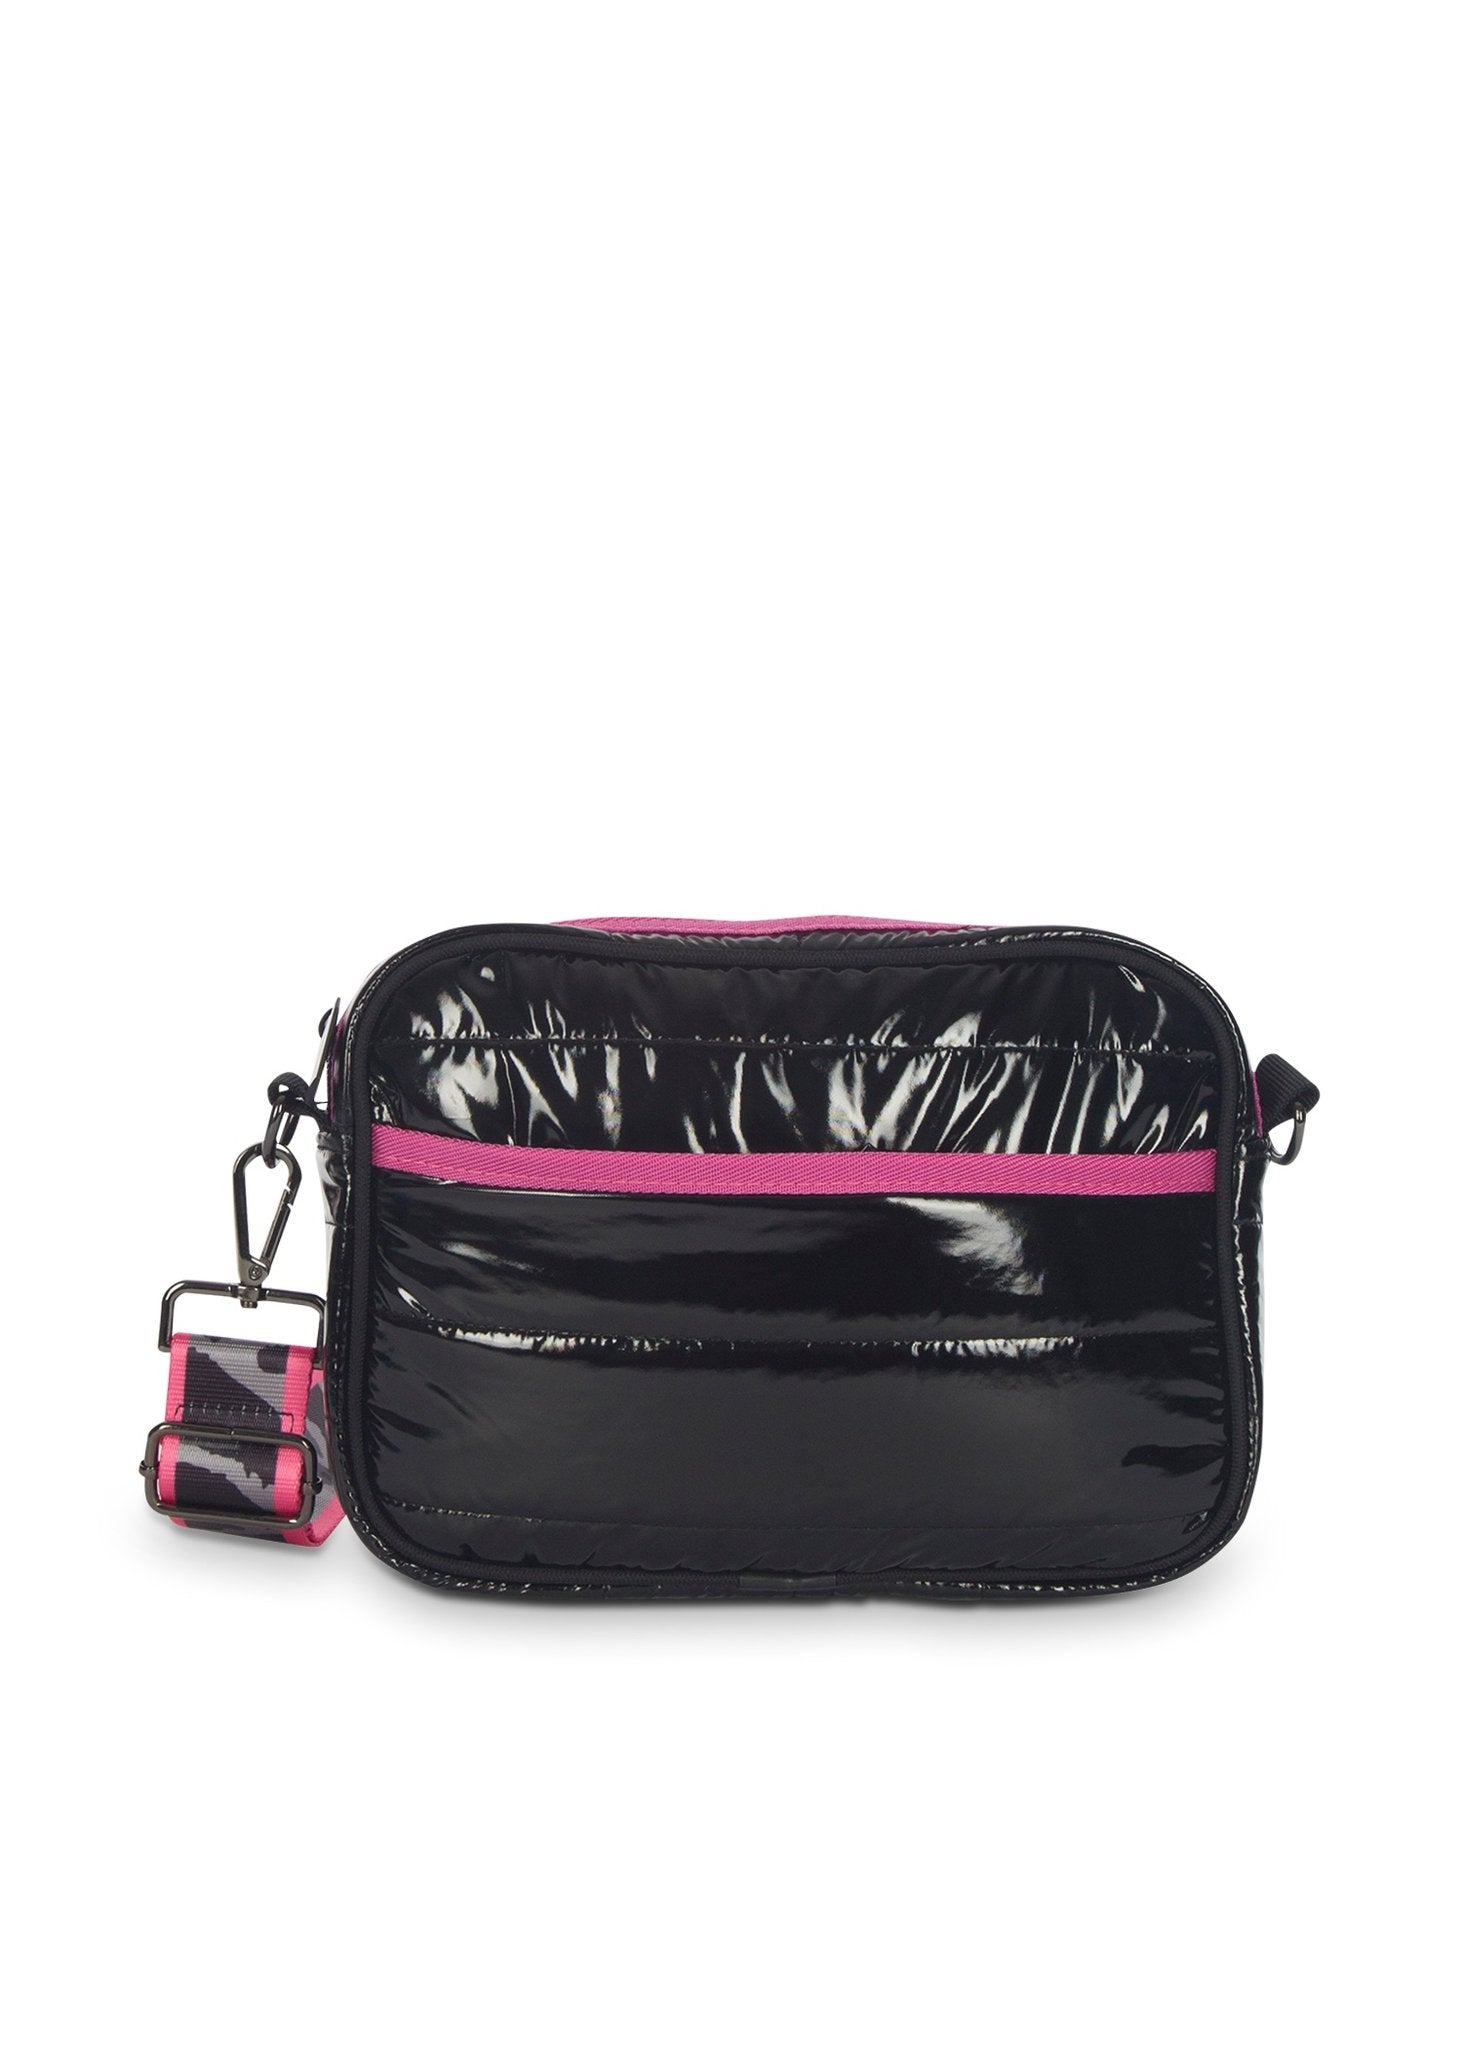 Haute Shore - Drew Noir2 Crossbody (Drew, Black Metallic w/Pink & Grey Camo Strap)